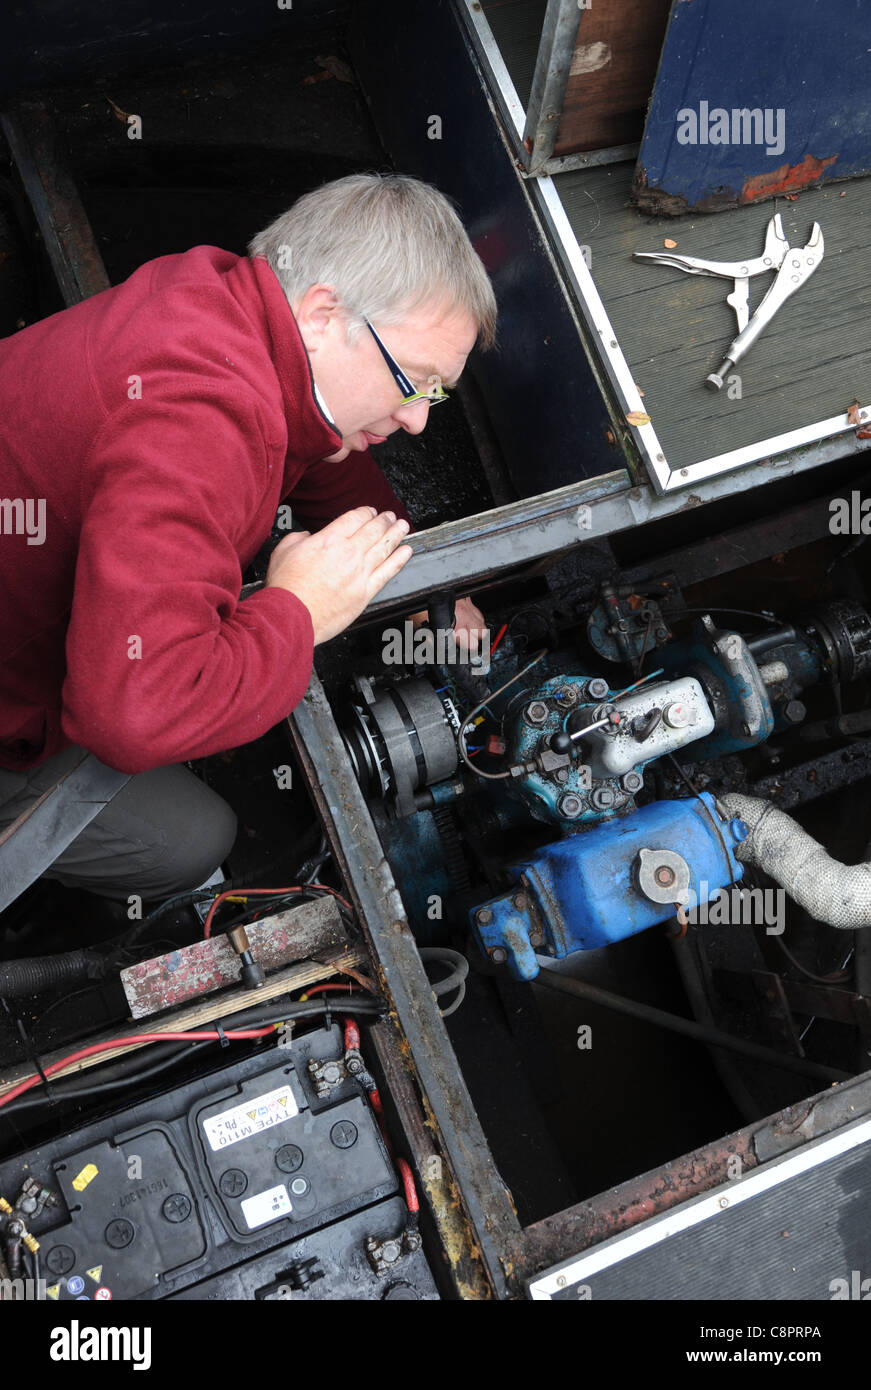 MAN WORKING ON CANAL BOAT NARROWBOAT BARGE DIESEL ENGINE WITH TOOLS RE BOATING MAINTENANCE HOLIDAY BREAKDOWNS ETC - Stock Image